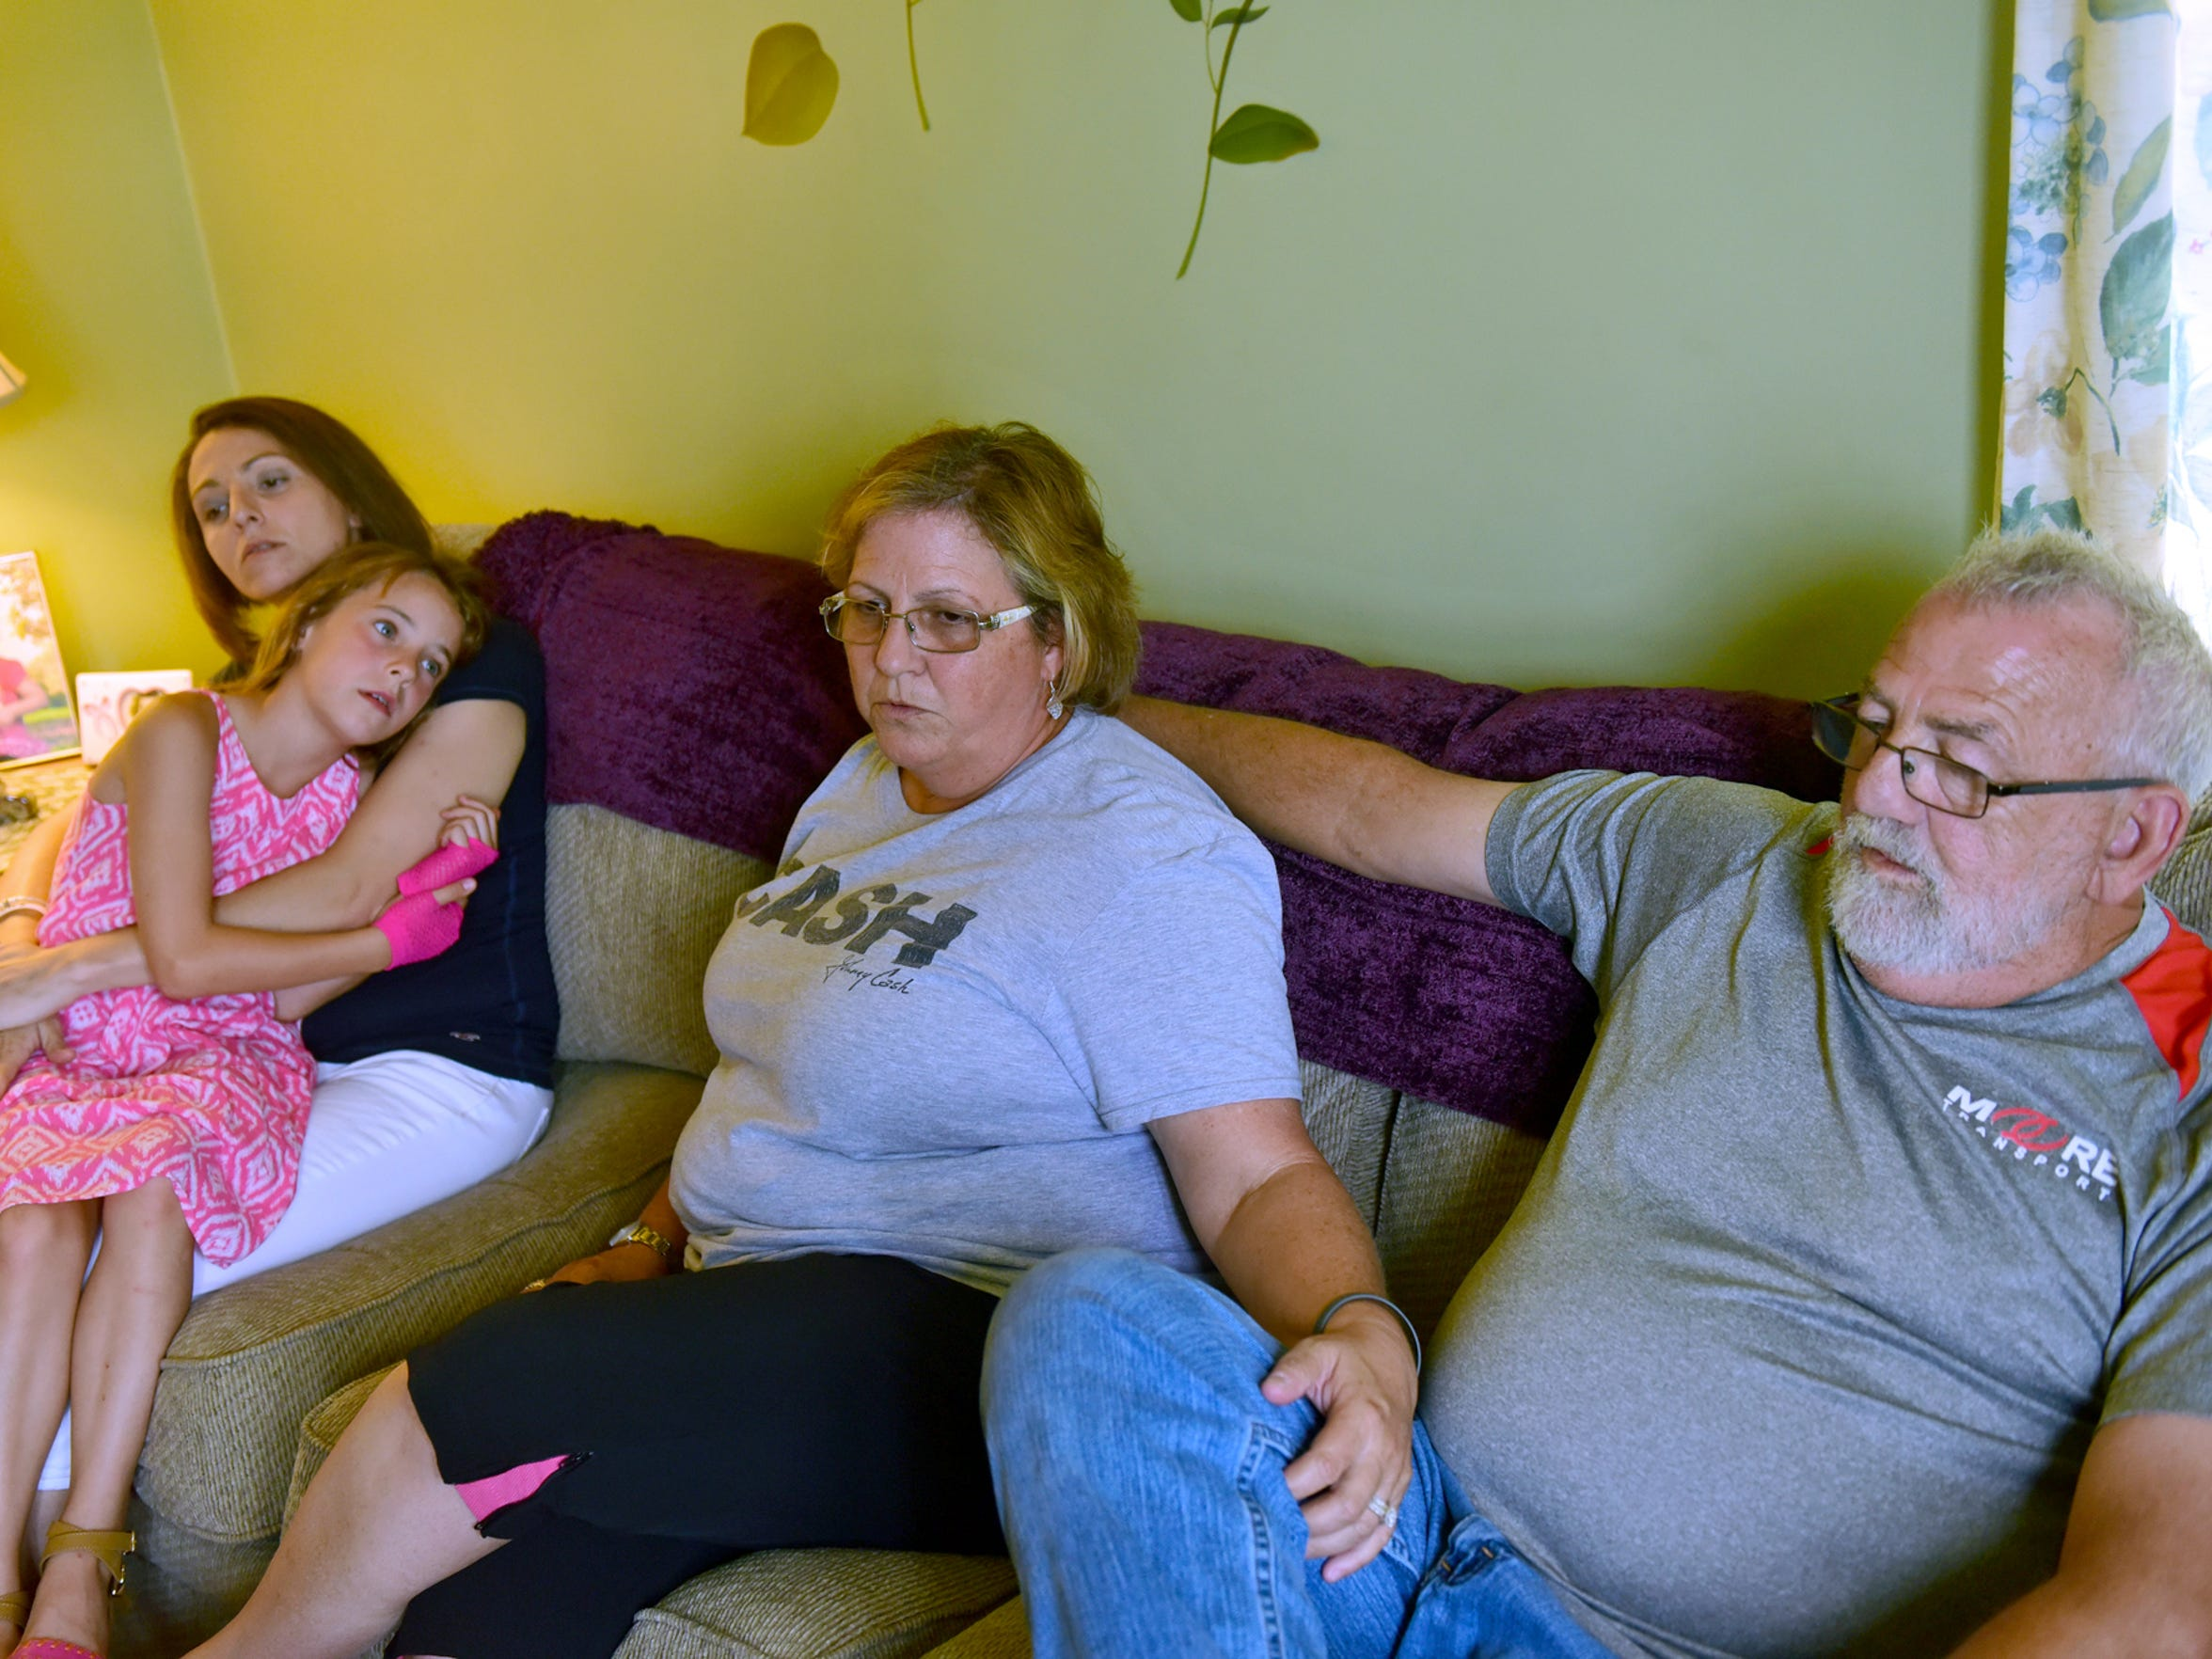 Staci Harrison, left,  holds her daughter Lela, 7,  as she spends time with her parents Mike and Sue Harrison of Marion. Staci Harrison battled addiction for a decade and is embracing recovery.